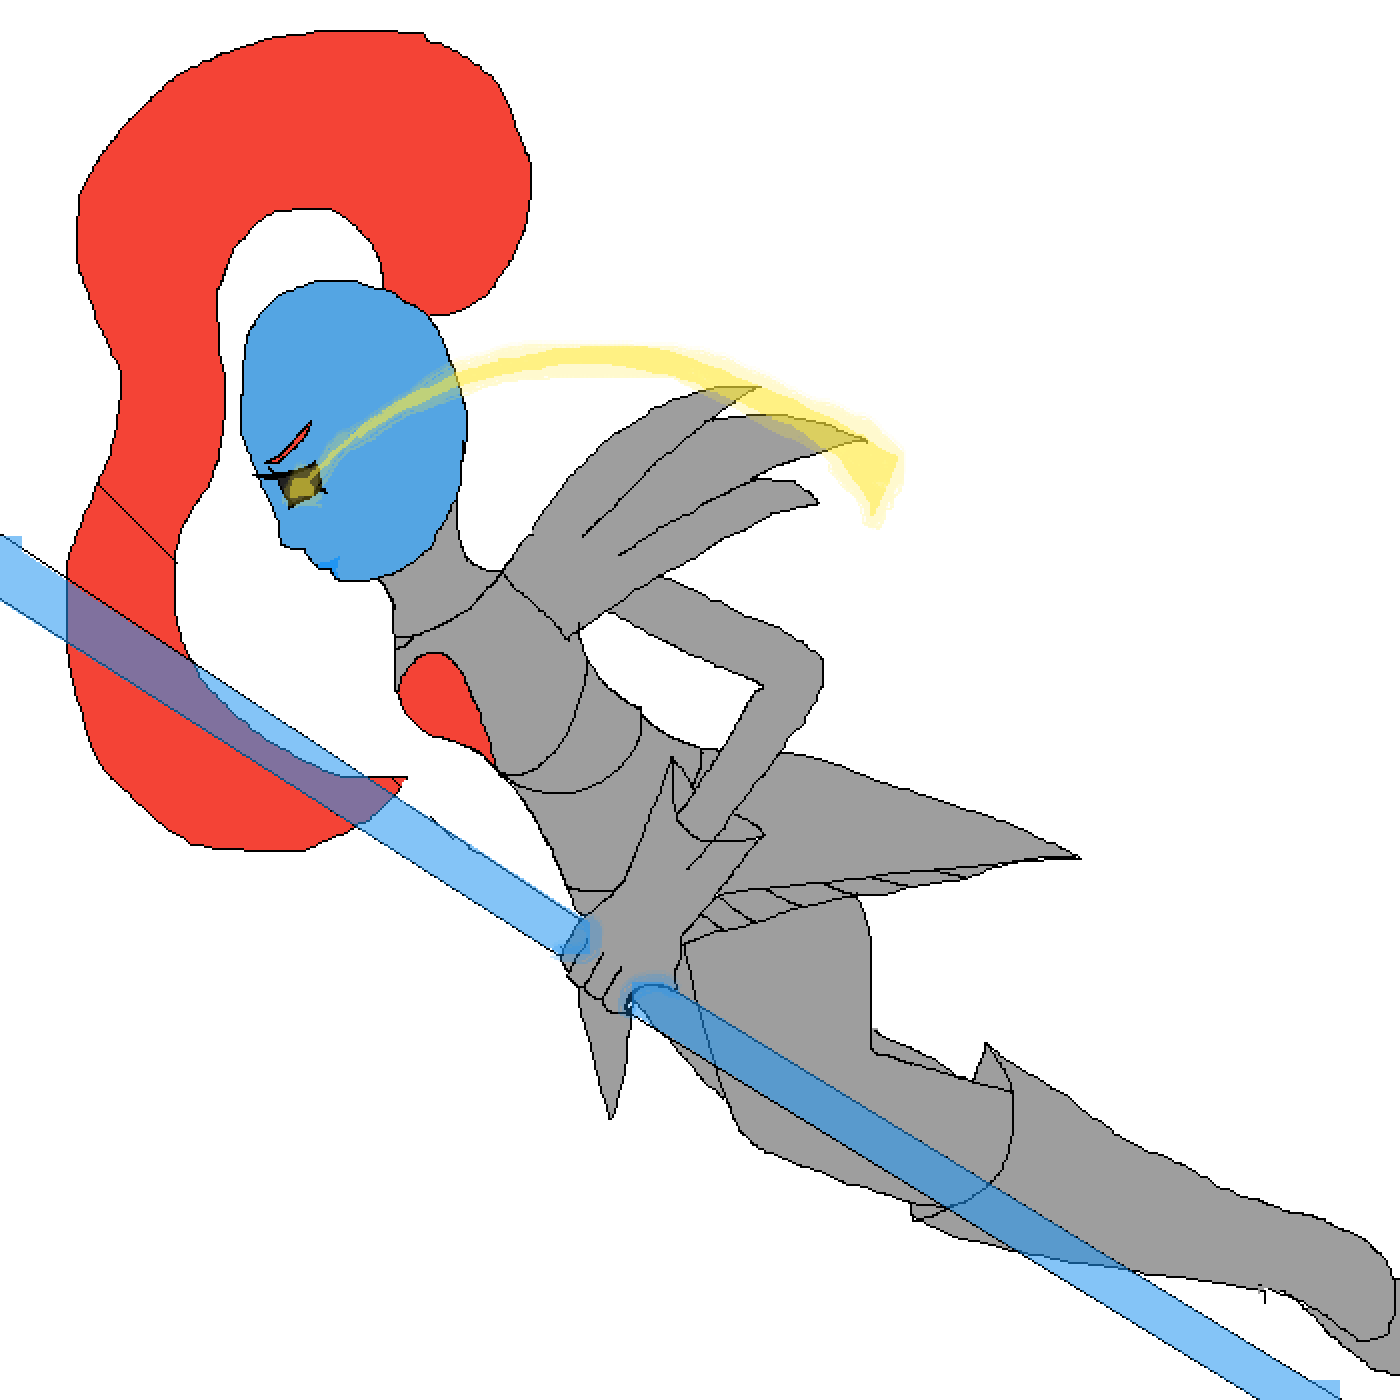 Undyne the undying by Meowi-me